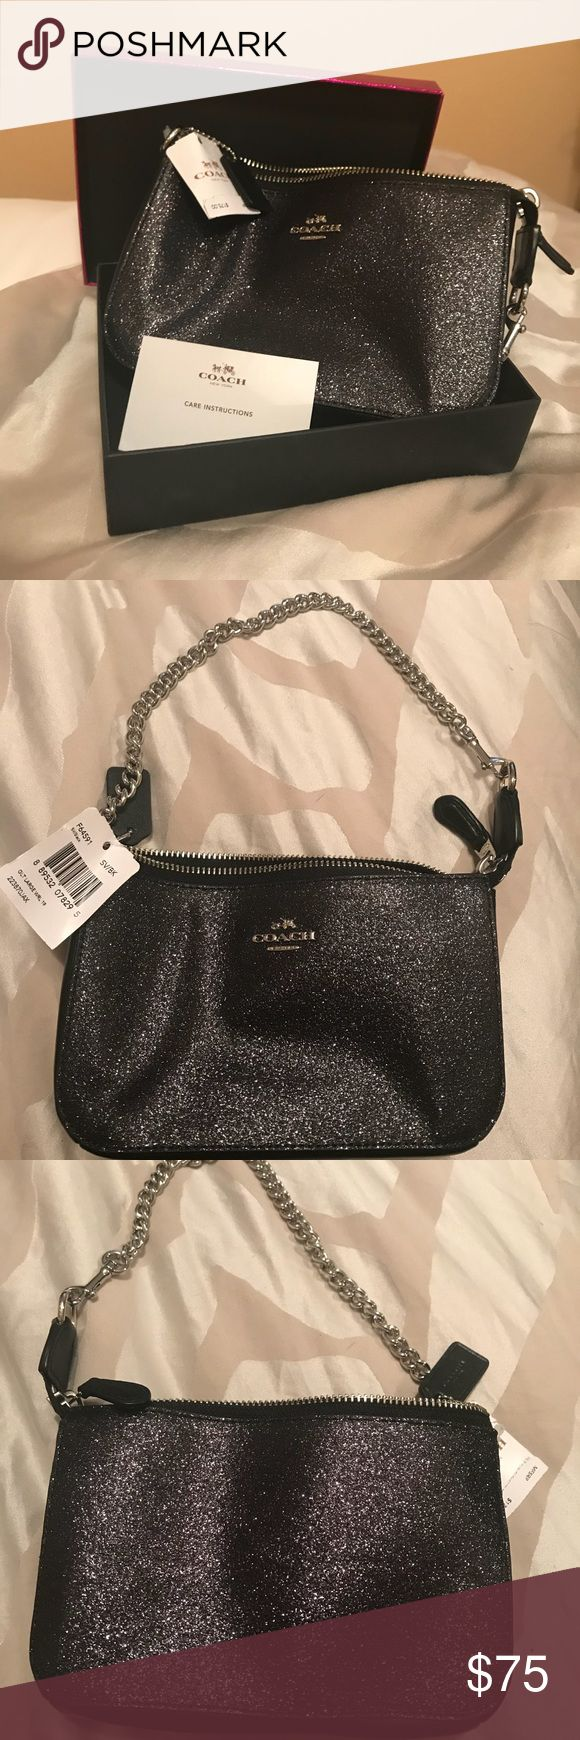 BRAND NEW Small Coach Purse 7.5in x 4.5in x 2in glittery black coach purse with chain strap. Never used!! Comes with original box, tags attached, and care instruction card. Inside has two sections, and 2 credit card slots. Top zips shut Coach Bags